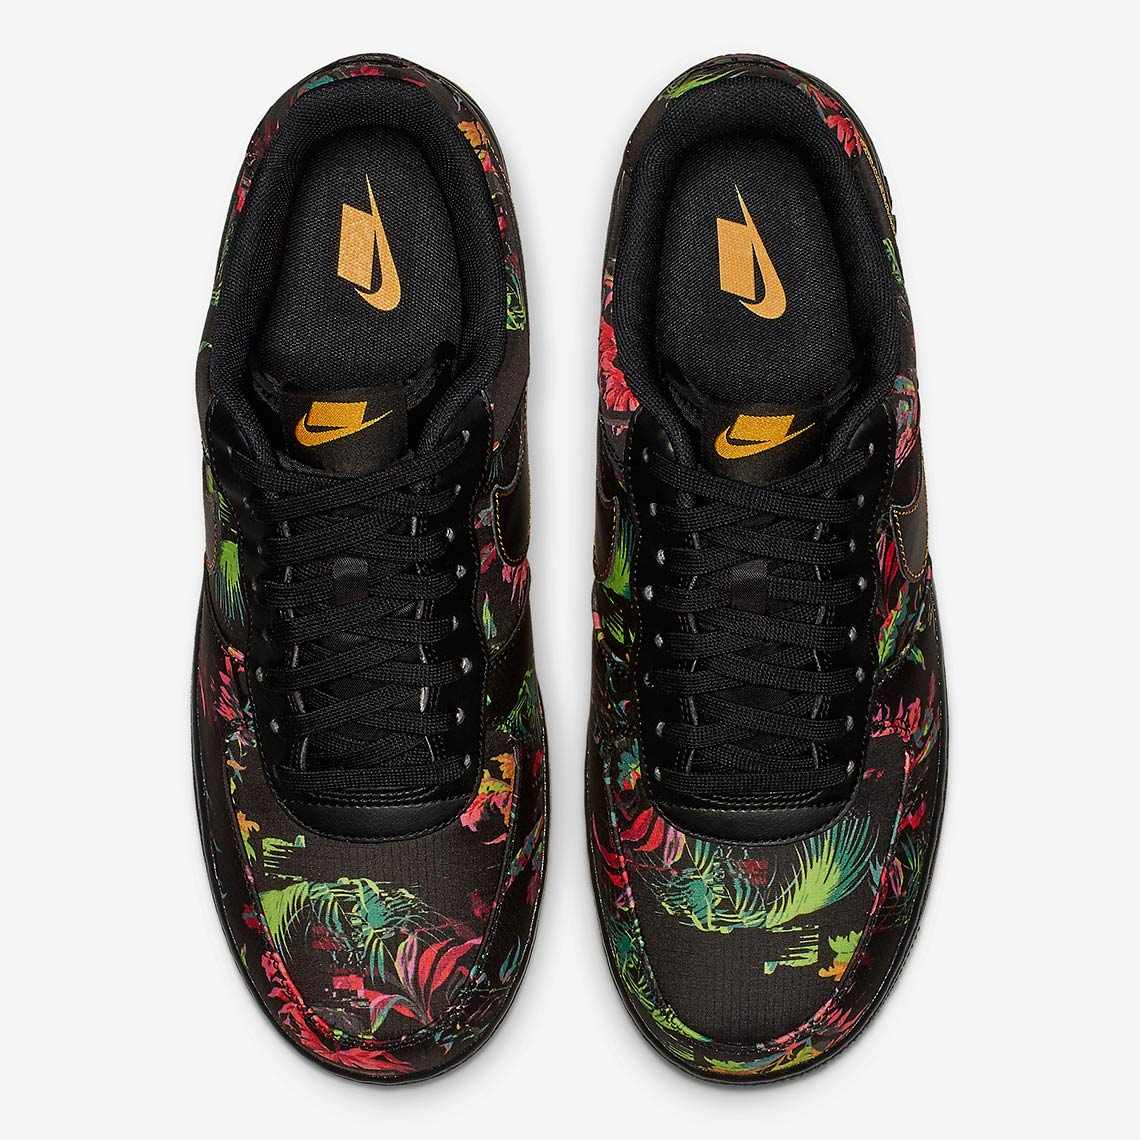 promo code 4ad5e 1b062 Nike Air Force 1 Low Floral BV6068-001 Release Info   SneakerNews.com